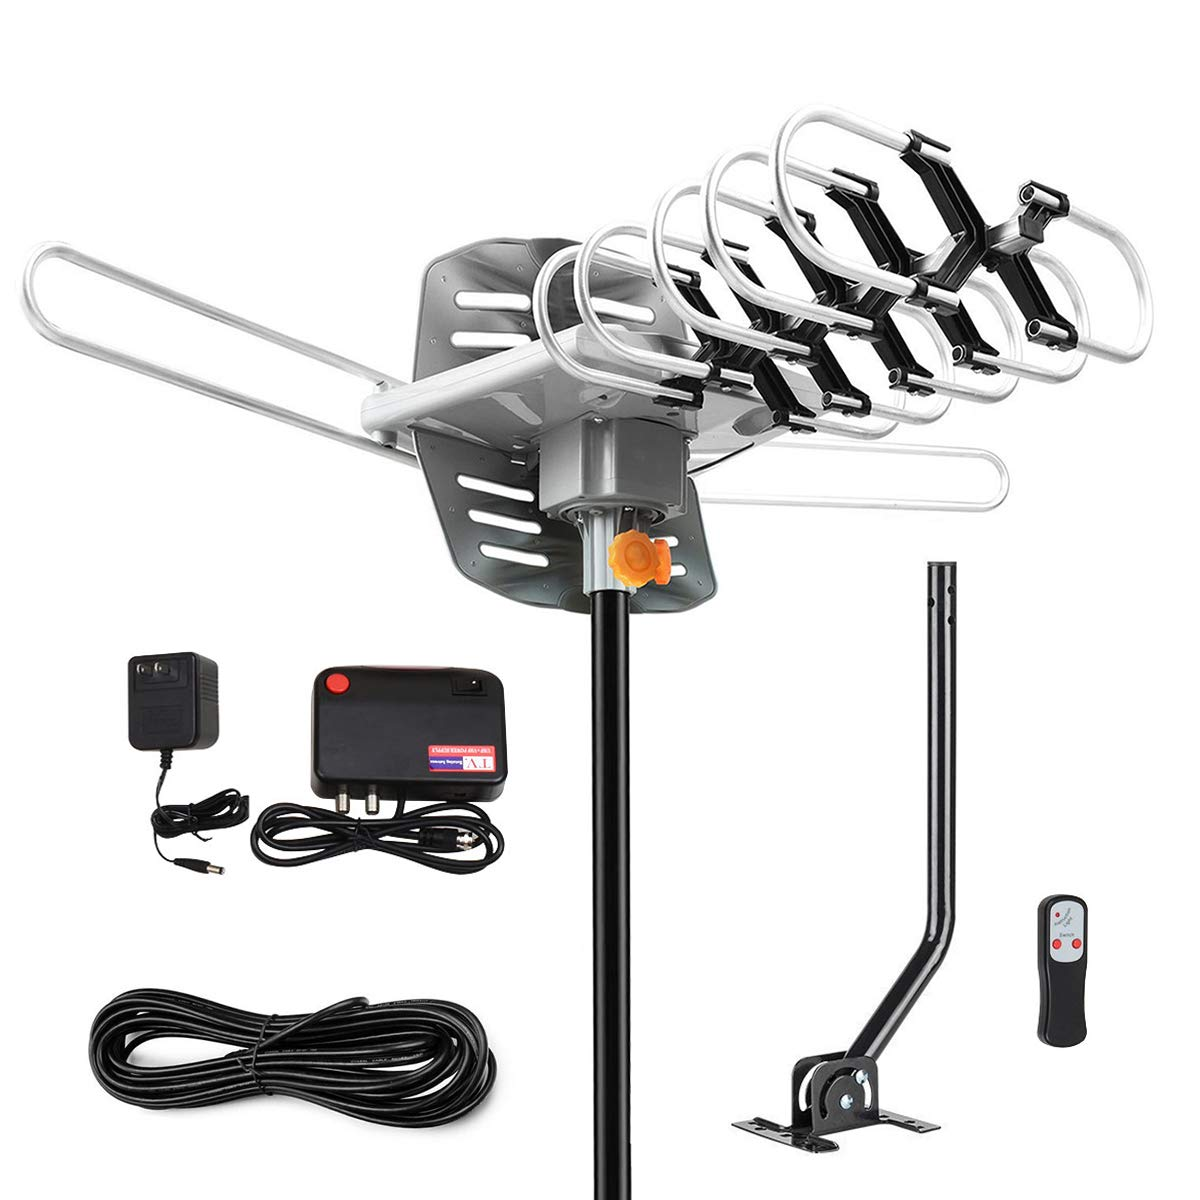 HD TV Digital Antenna -150 Miles Range w/ 360 Degree Rotation Wireless Remote - UHF/VHF/1080p/ 4K Ready with Mounting Pole - On Installation Support 2 TVs by Long store